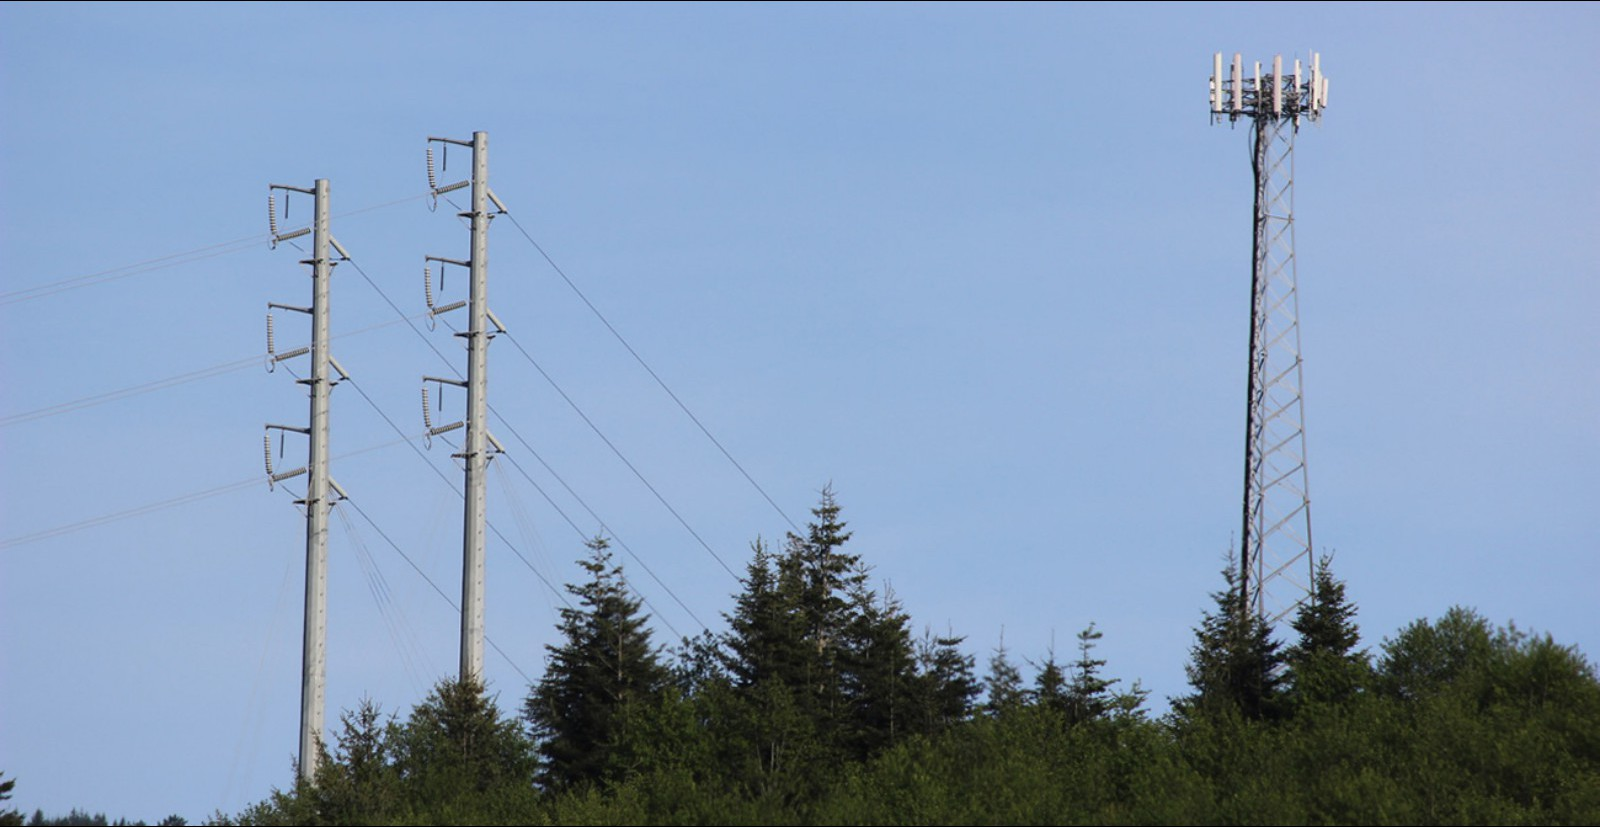 Transmission Poles & Telecom Towers